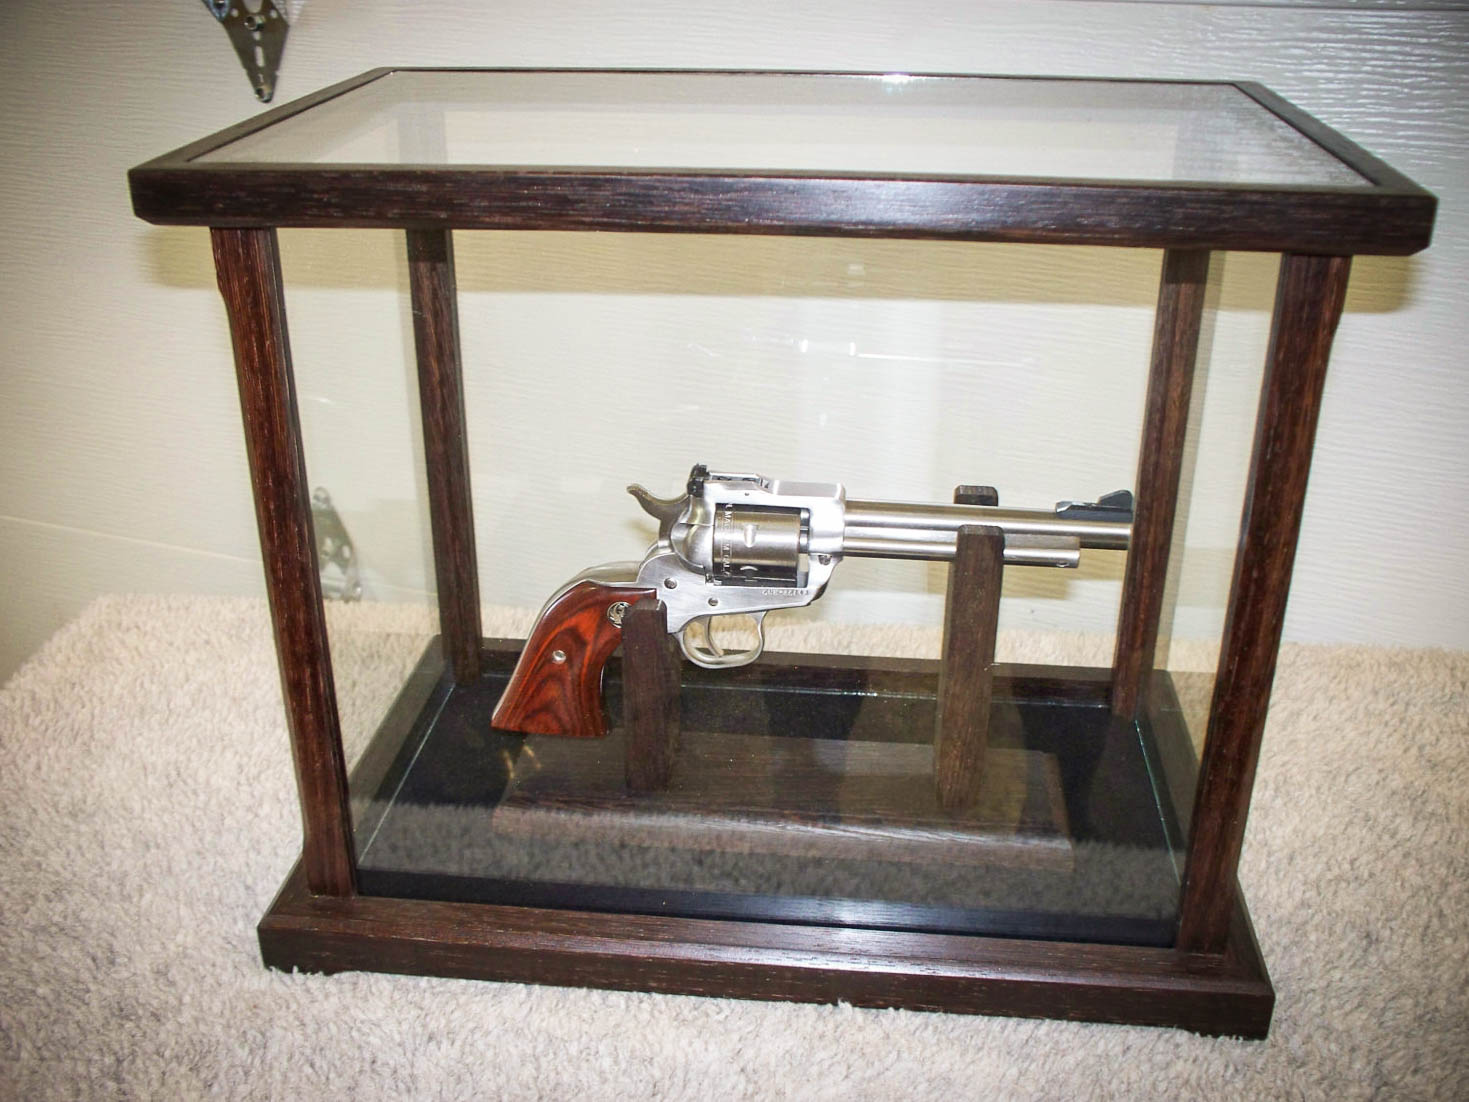 Handmade Gun / Pistol Glassed Display Case Made From Solid Peruvian Walnut